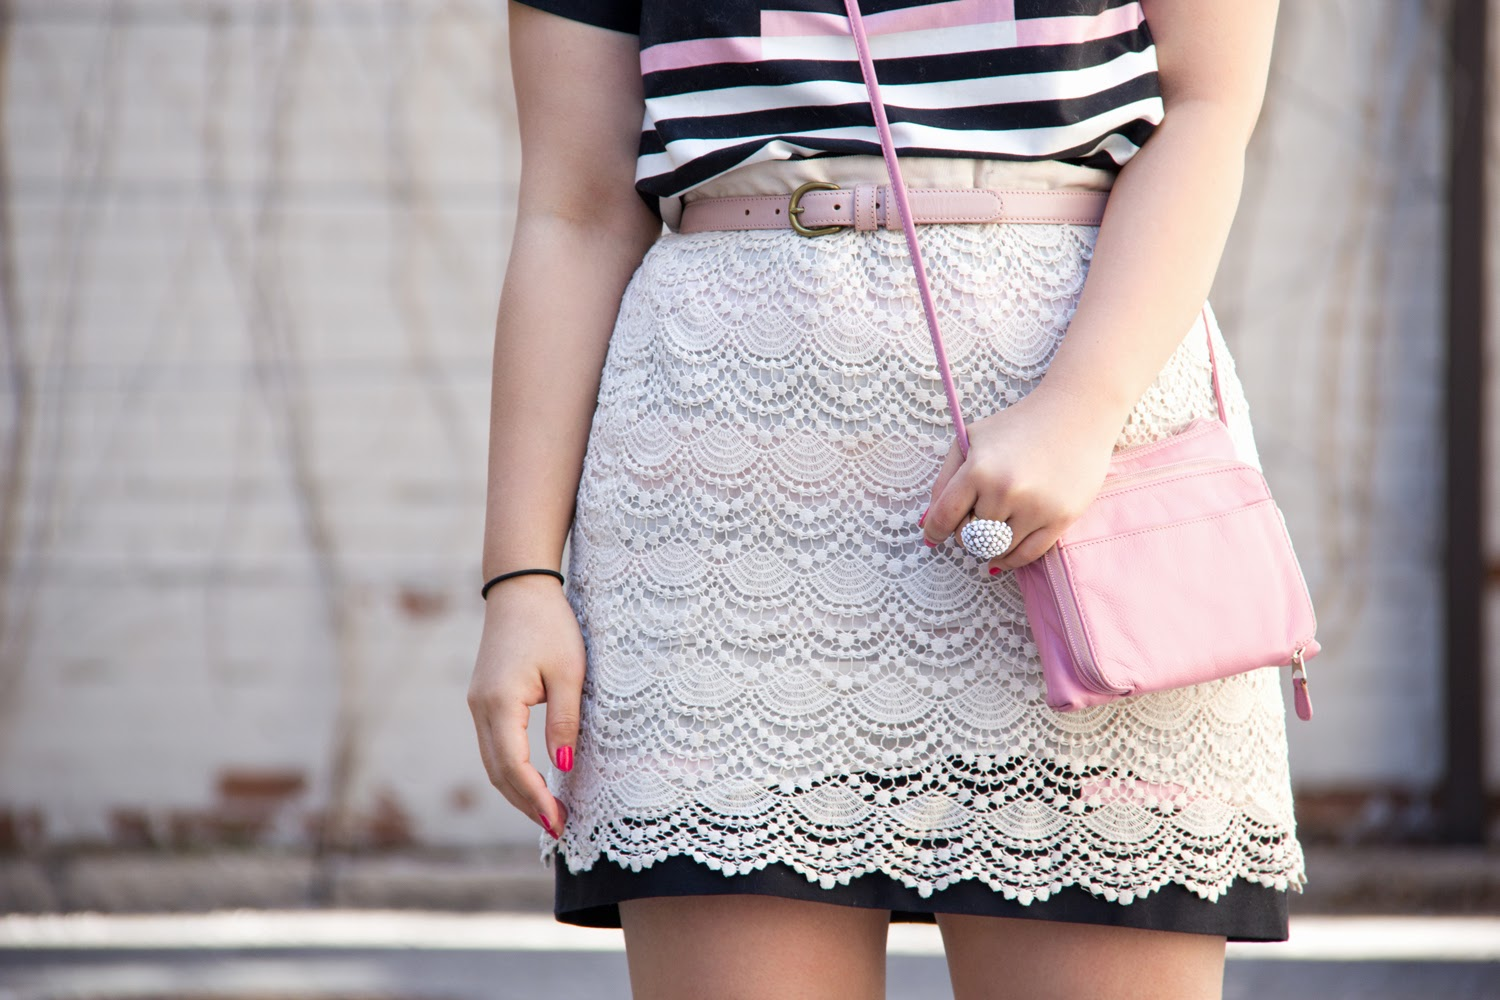 Skirt-over-dress, joe-fresh, club-monaco, white-lace, eclectic-stripe-dress, pastel-pink